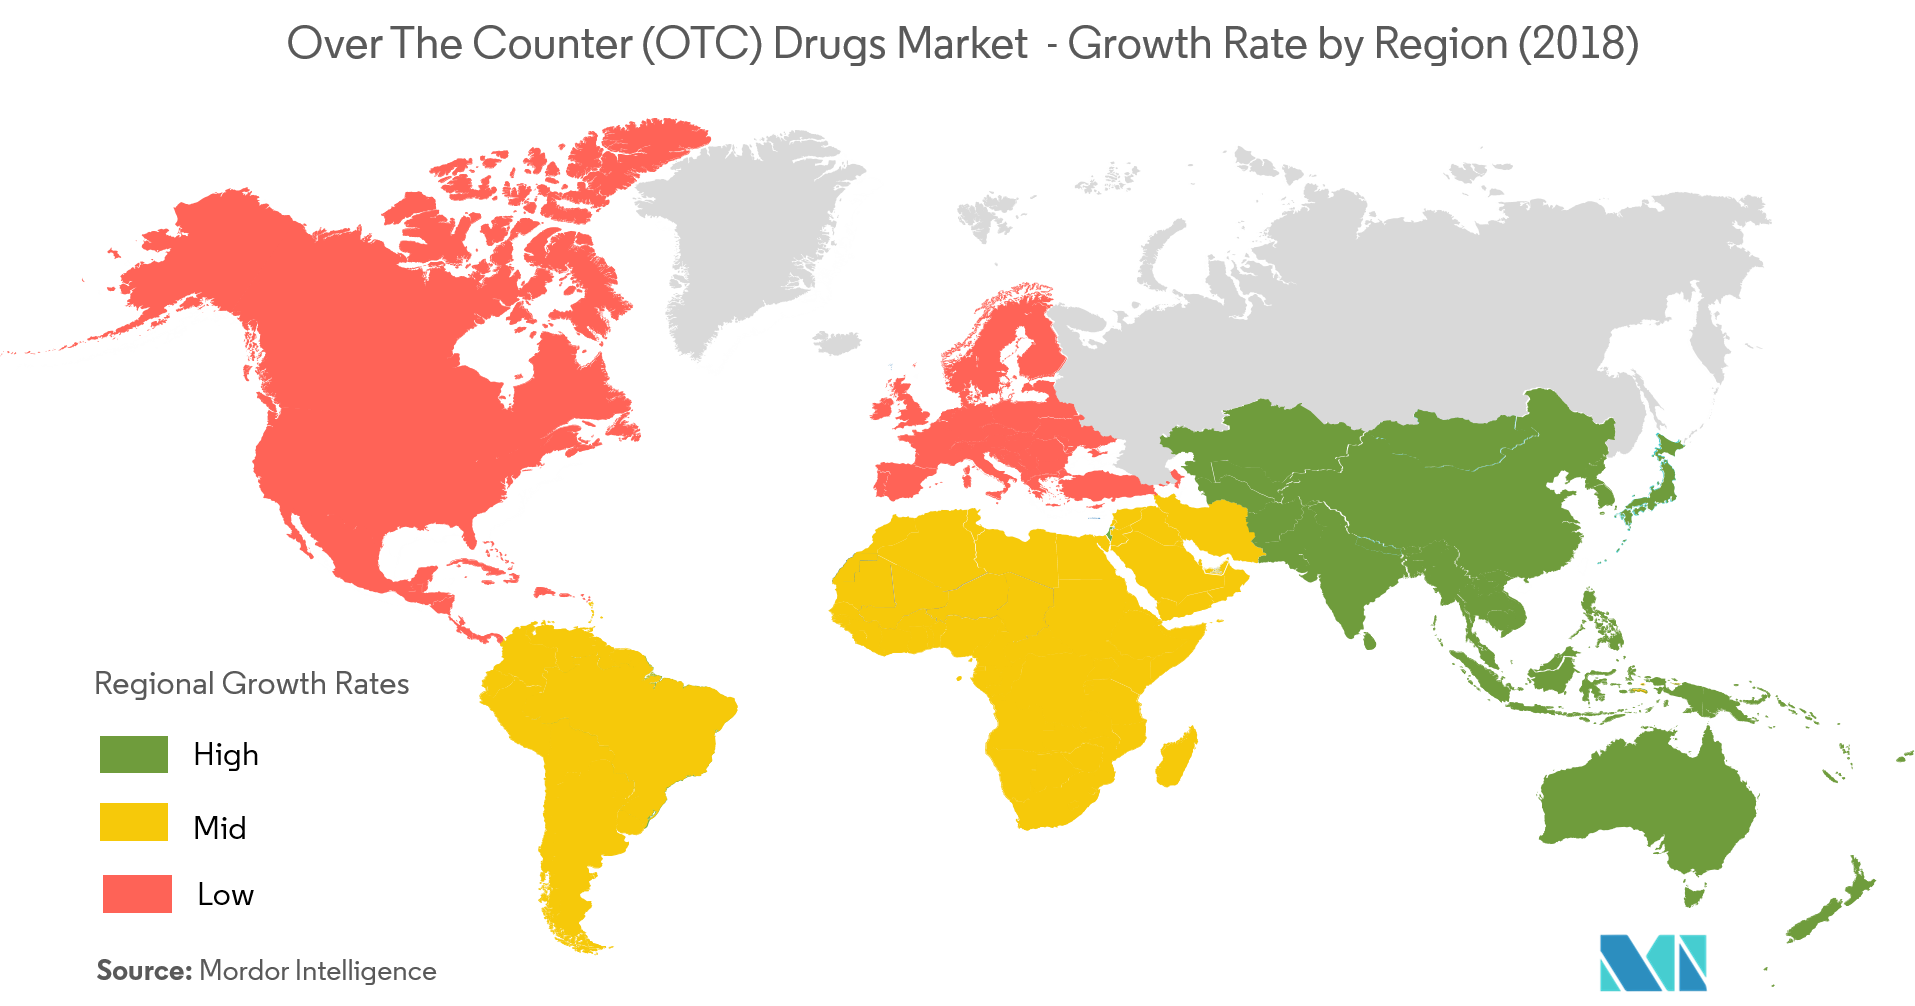 Over The Counter (OTC) Drugs Market | Growth, Forecast (2019